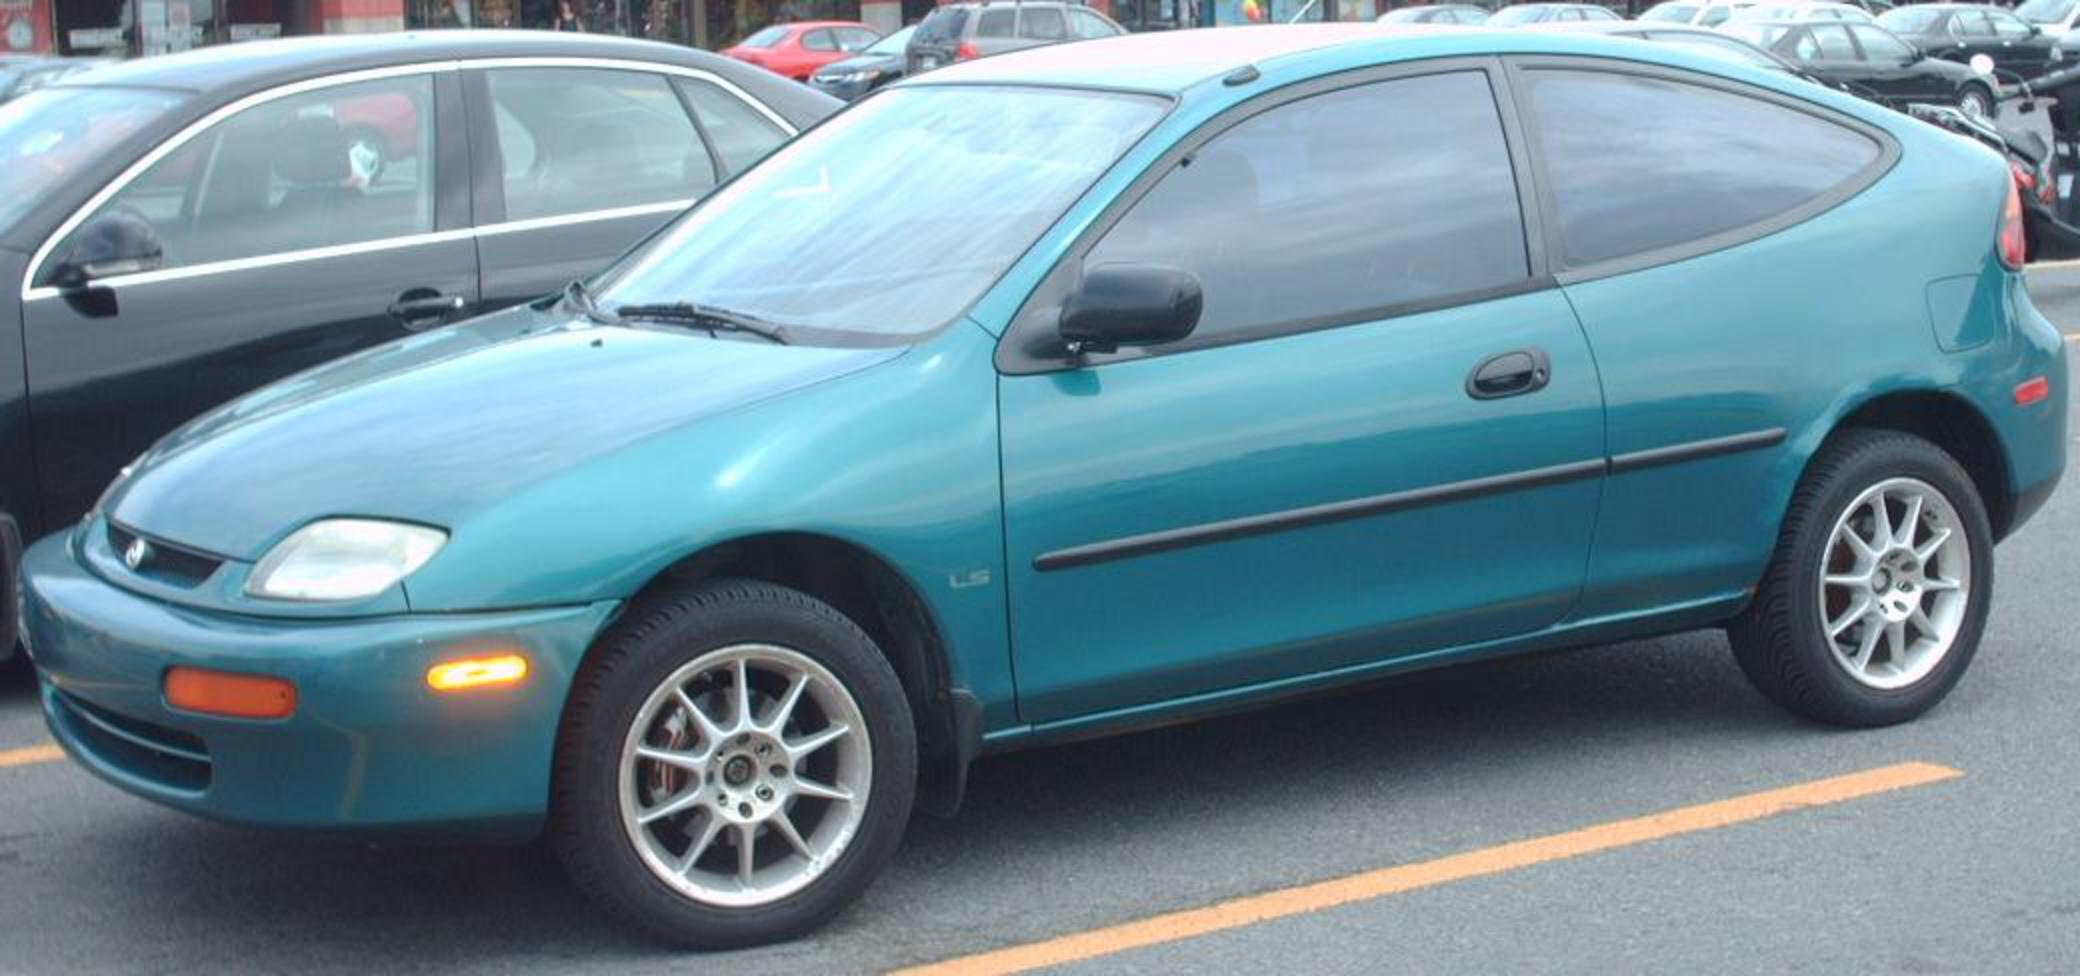 File:'95 Mazda 323 Hatch.JPG - Wikipedia, the free encyclopedia